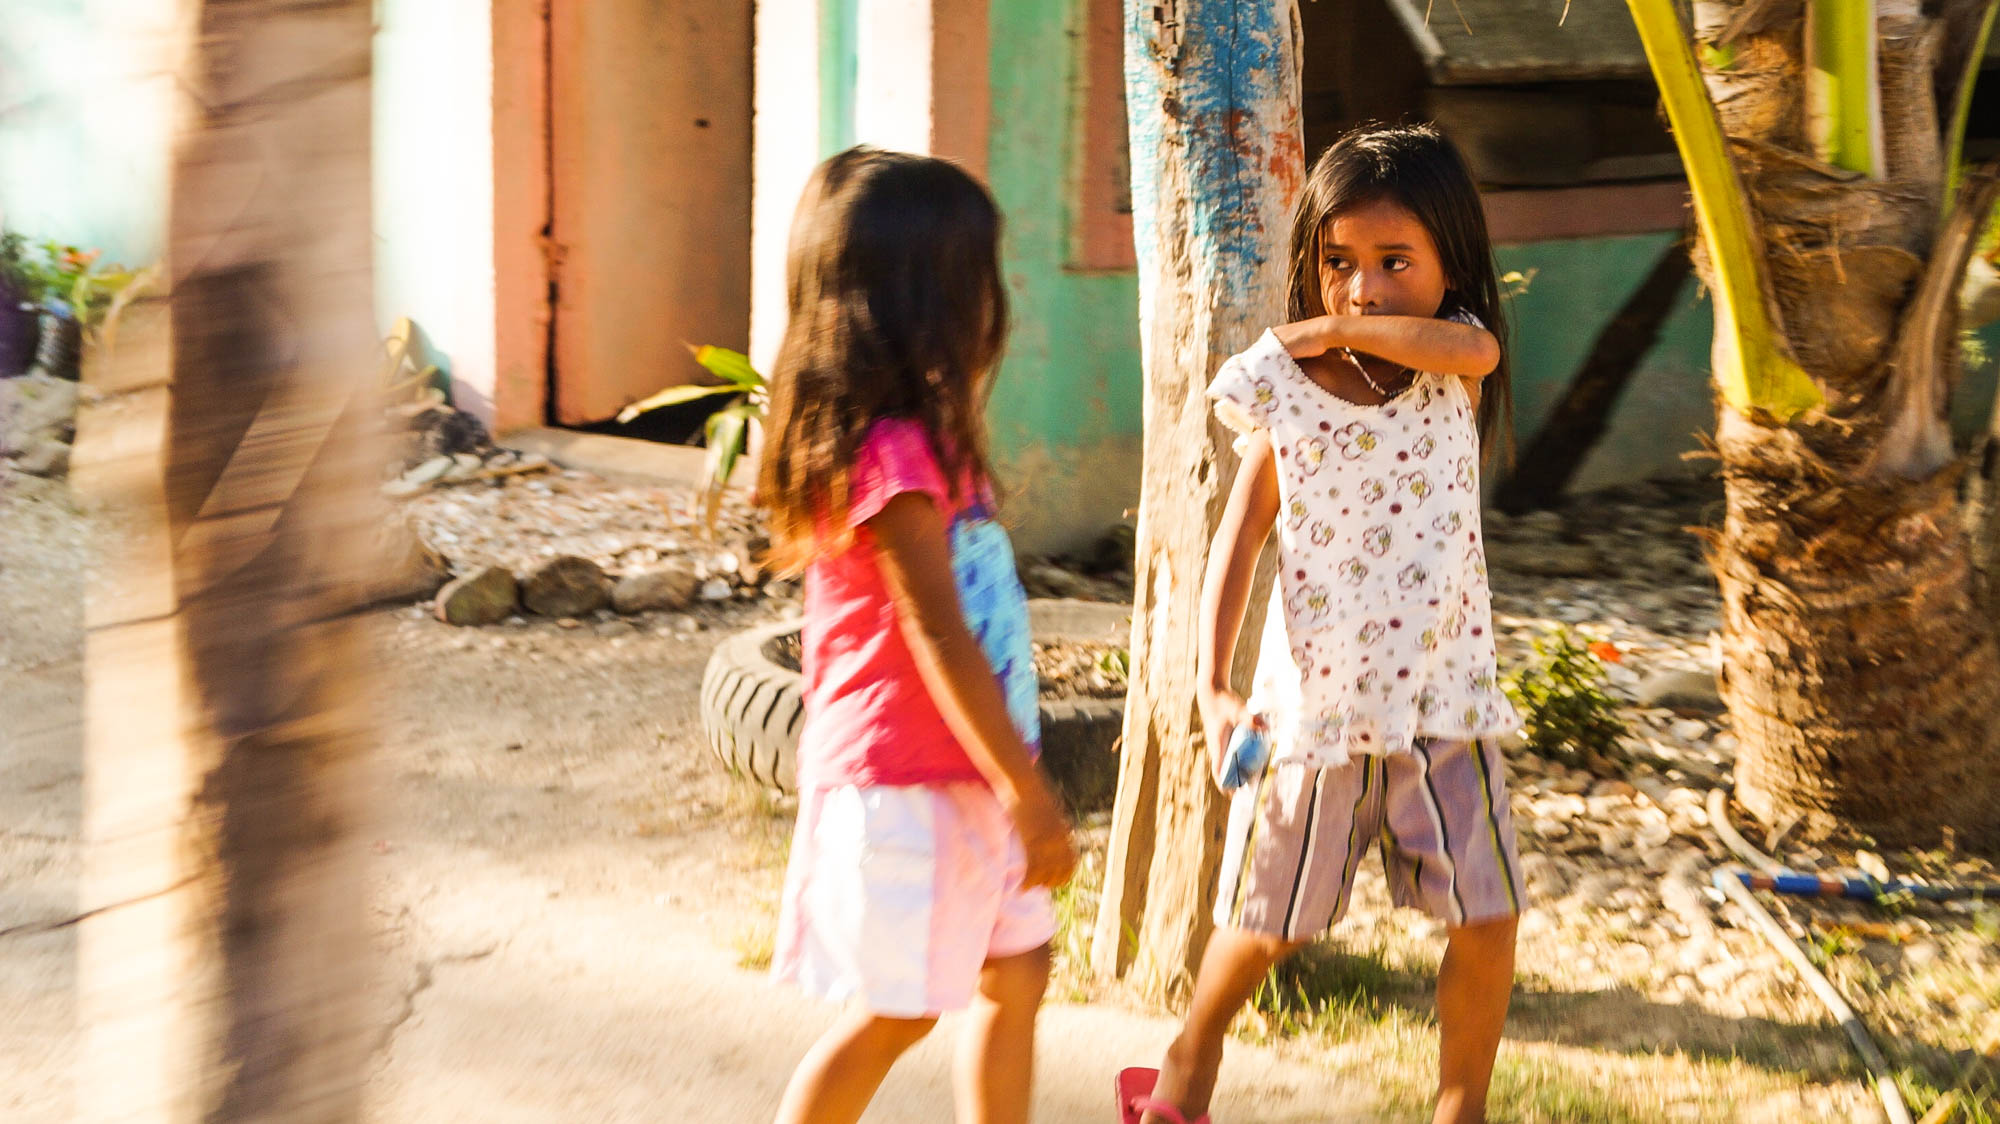 Islas de Gigantes - Gigantes Norte Lighthouse - illumelation